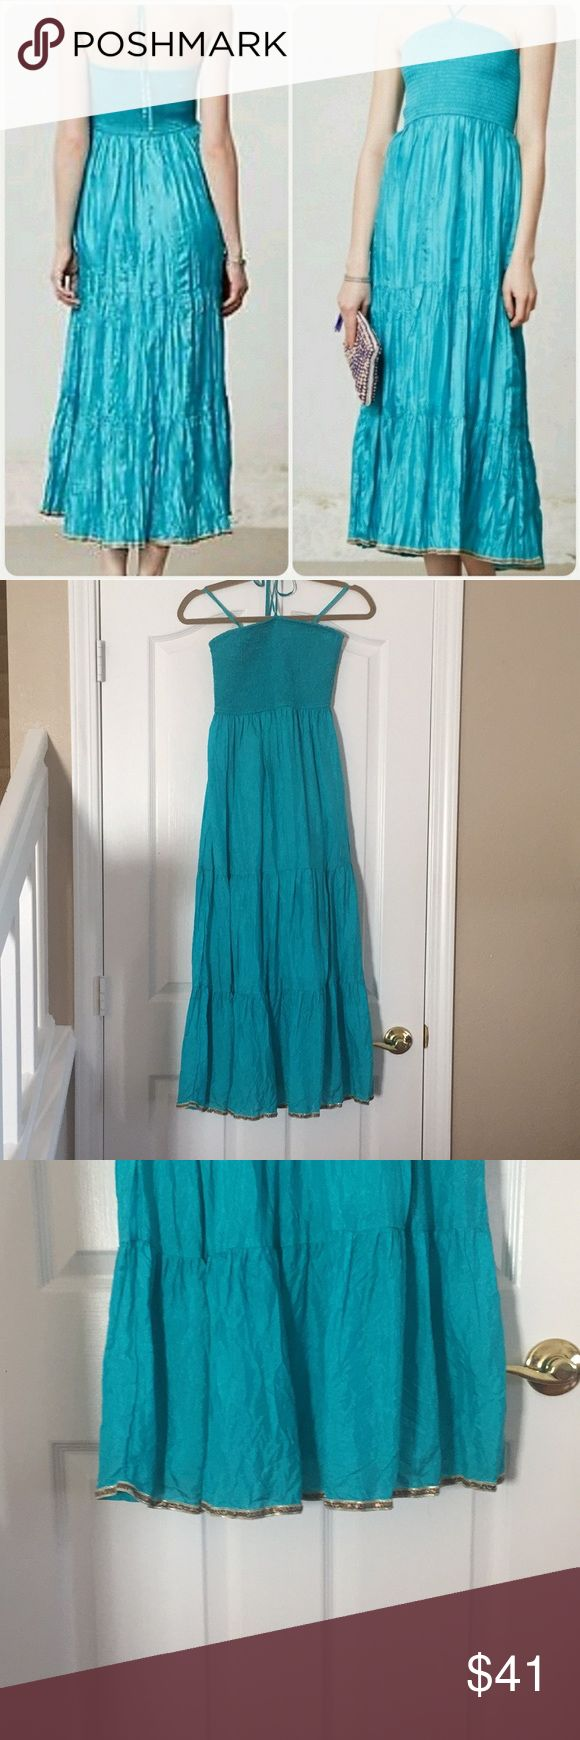 Anthropologie Maeve Teal Maxi Dress In perfect condition, hardly ever worn. From Anthro, brand is Maeve. length is 41 inches. Note: the cover shot was not taken by me. They are stock photos, and not my intellectual property. Anthropologie Dresses Maxi